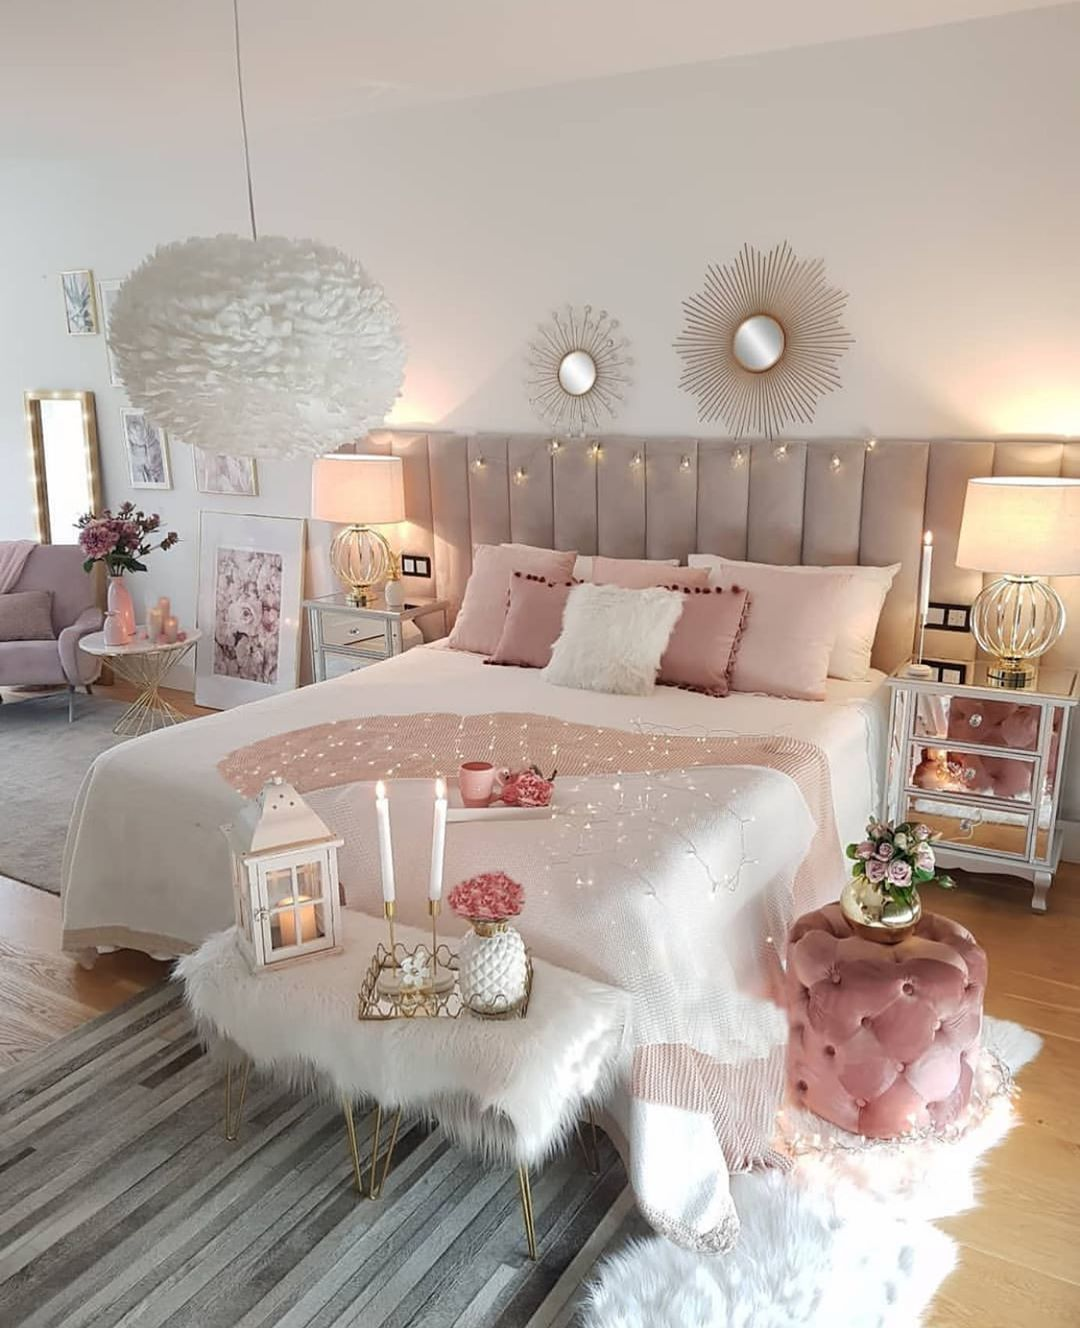 Pin By Kathy Maggard On Fashion Cuteteenoutfits Room Inspiration Bedroom Bedroom Decor Big Bedrooms